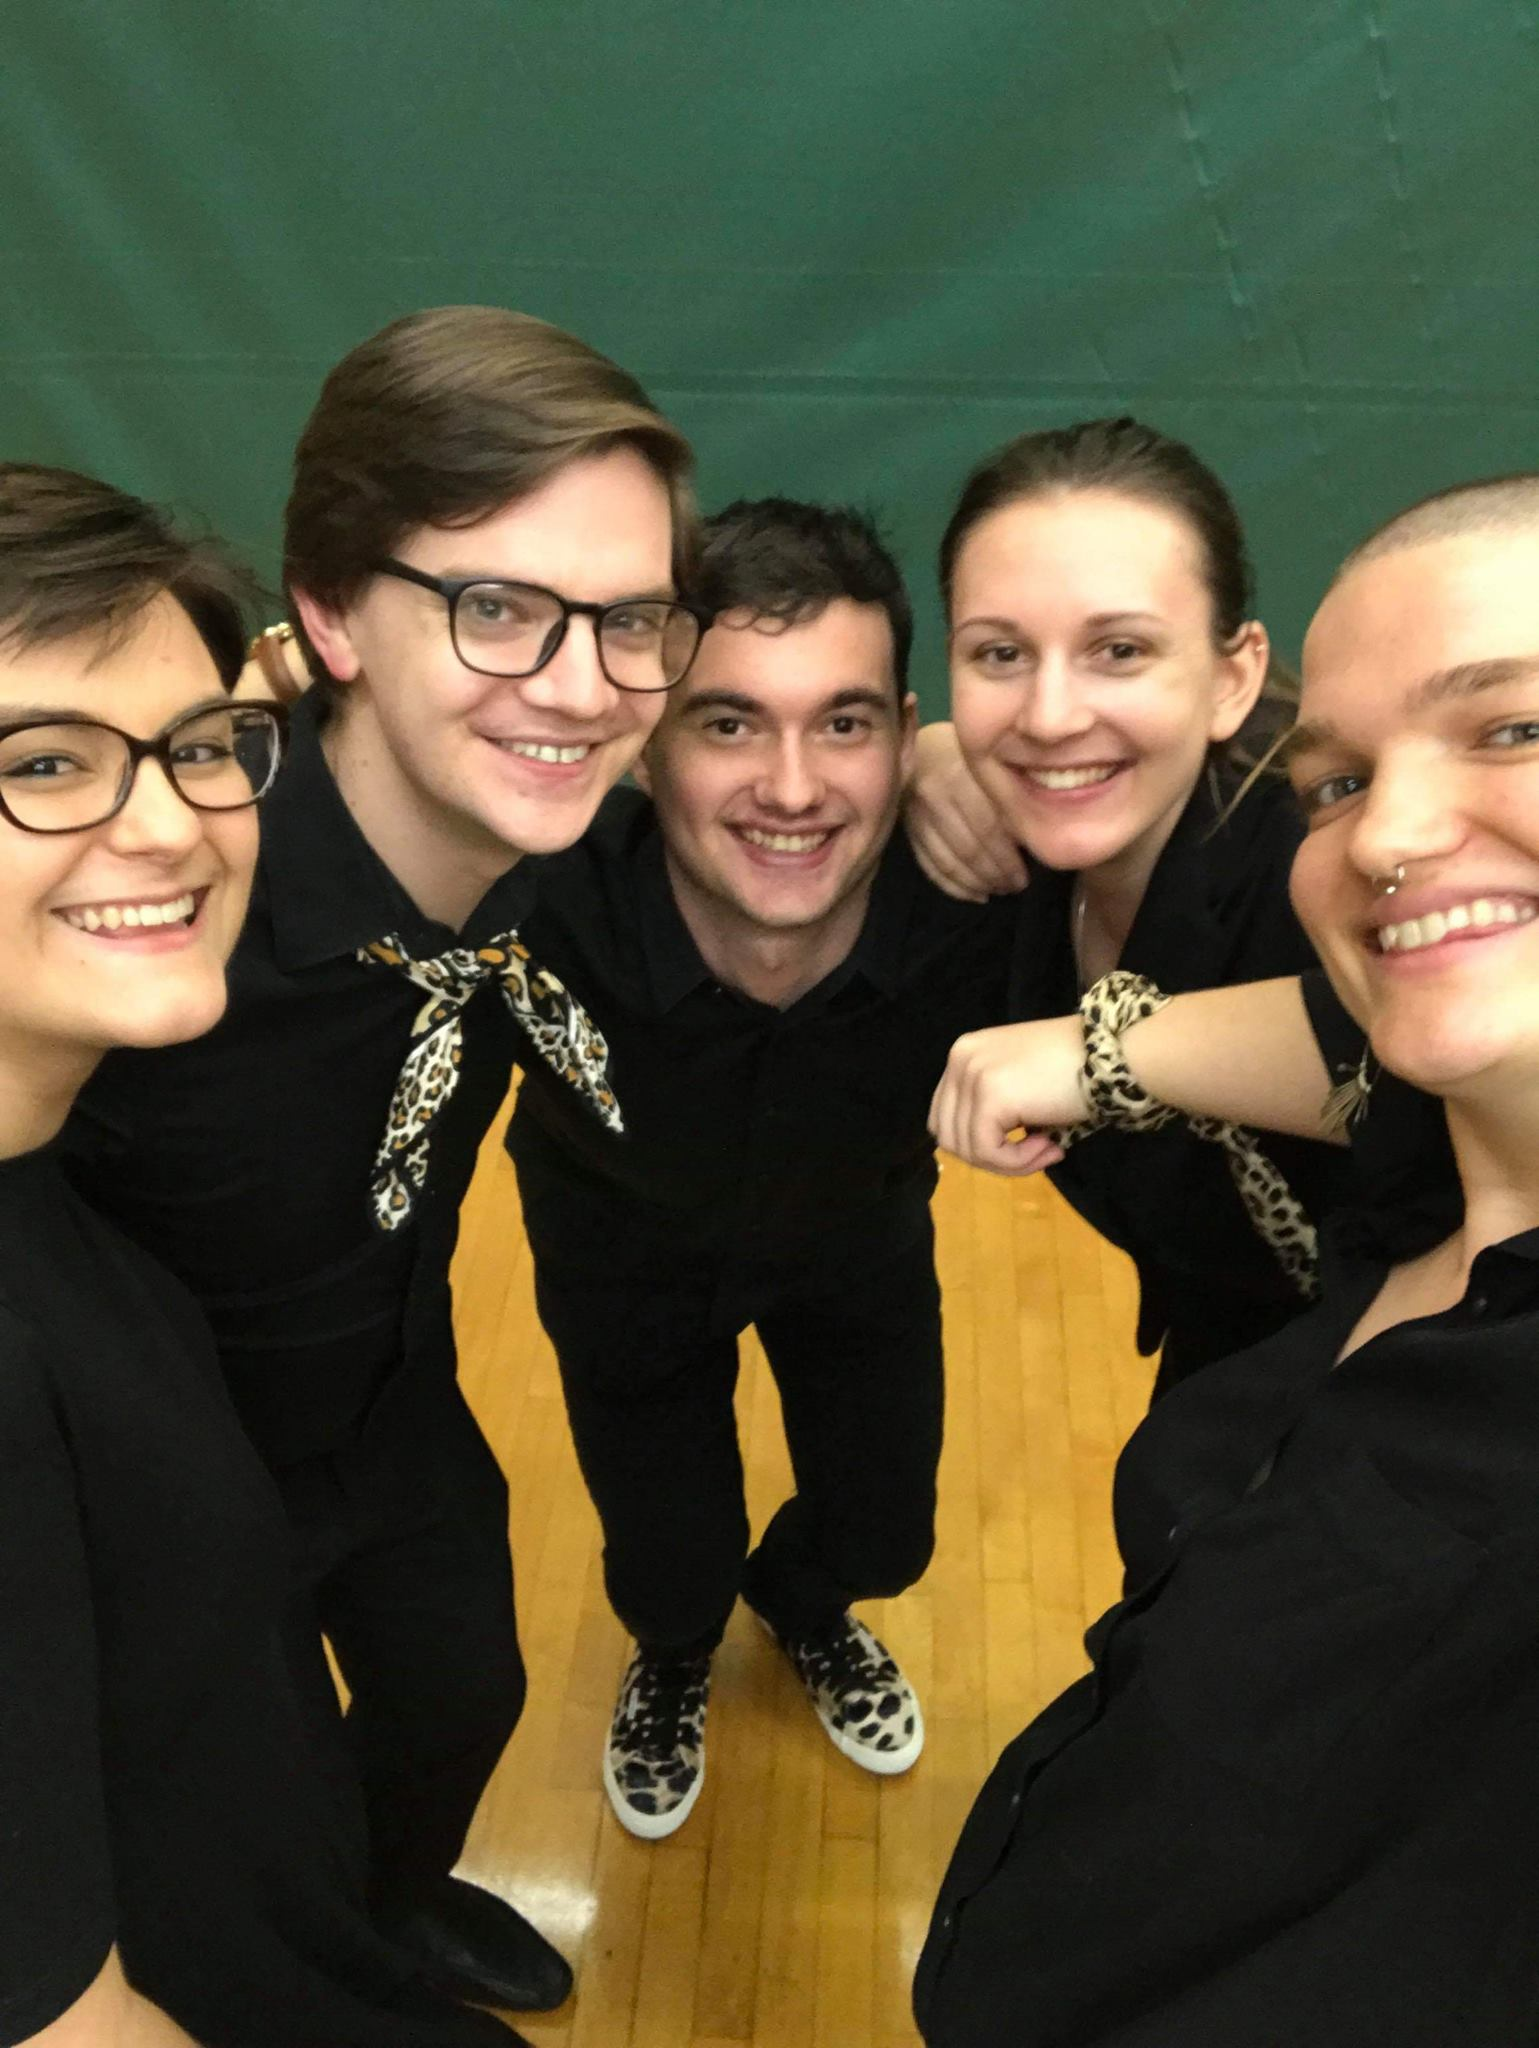 BIO - Founded in the summer of 2018, subtle cheetah brass quintet is made up of members Kevin Barnes, Olivia Pidi, Sarah Konvalin, Julie Dombroski, and Morgan Fite. From 2018-2019, subtle cheetah took part in the Orchestra of St. Luke's Chamber Music Mentorship Program. Under the guidance of American Brass Quintet bass trombonist John D. Rojak, subtle cheetah performed in Cary Hall at the DiMenna Center for Classical Music, the Glassbox Theater at the Mannes School of Music, and Greenfield Hall at the Manhattan School of Music, as well as outreach concerts in Manhattan. Committed to advancing a diverse pool of voices in the classical music world, subtle cheetah was recently awarded a grant from the Alsop Family Foundation to curate a concert of works by underrepresented composers in the contemporary classical community. subtle cheetah is committed to creating high quality performances that merge new works with the existing brass quintet repertoire.